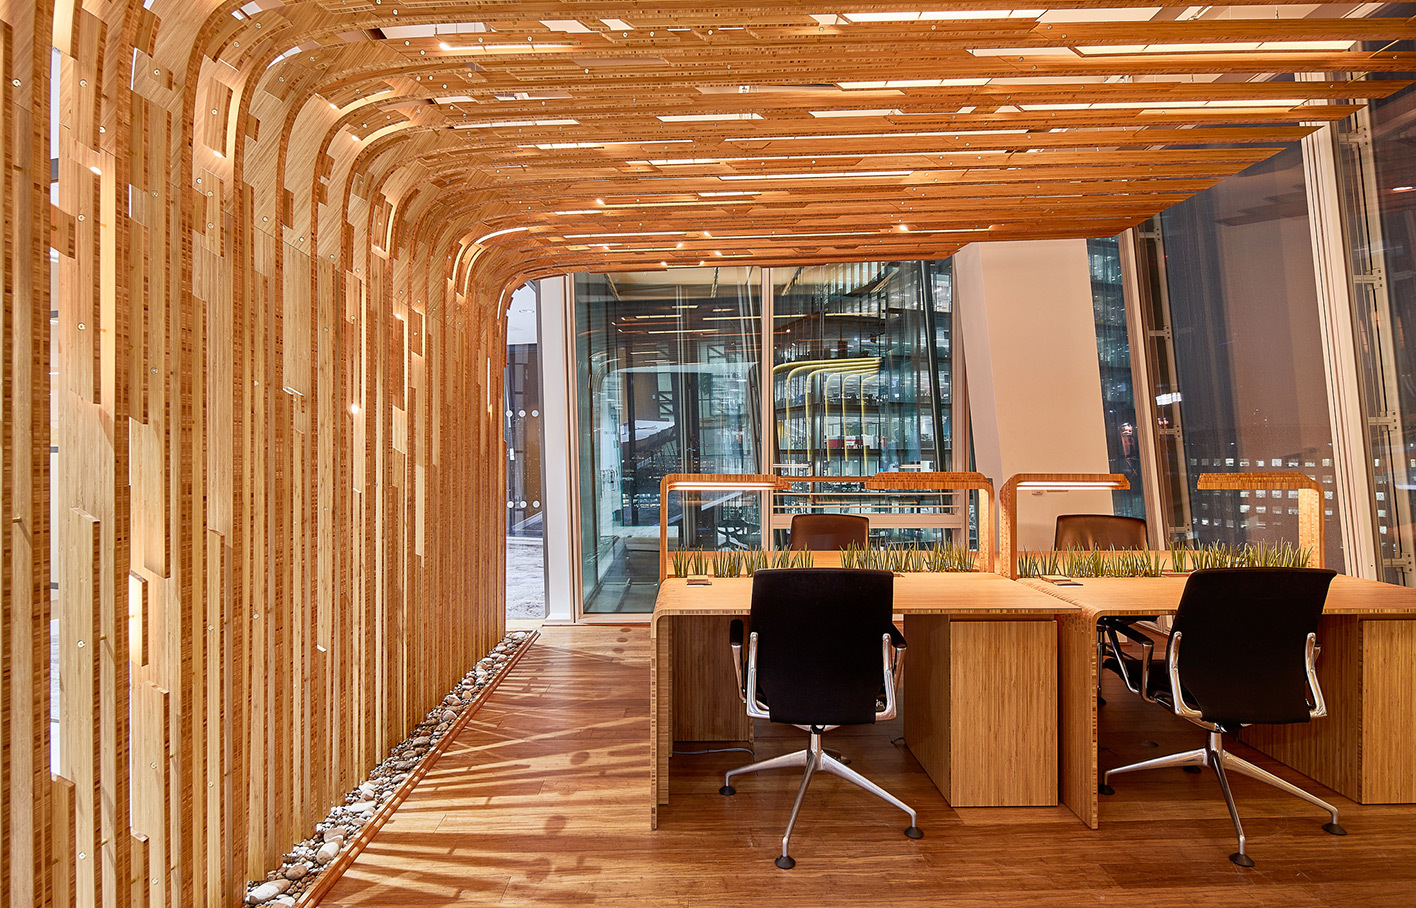 Aldworth James & Bond | Winter Gardens - The Shard | The Living Labs — ceiling ribs using bamboo plywood